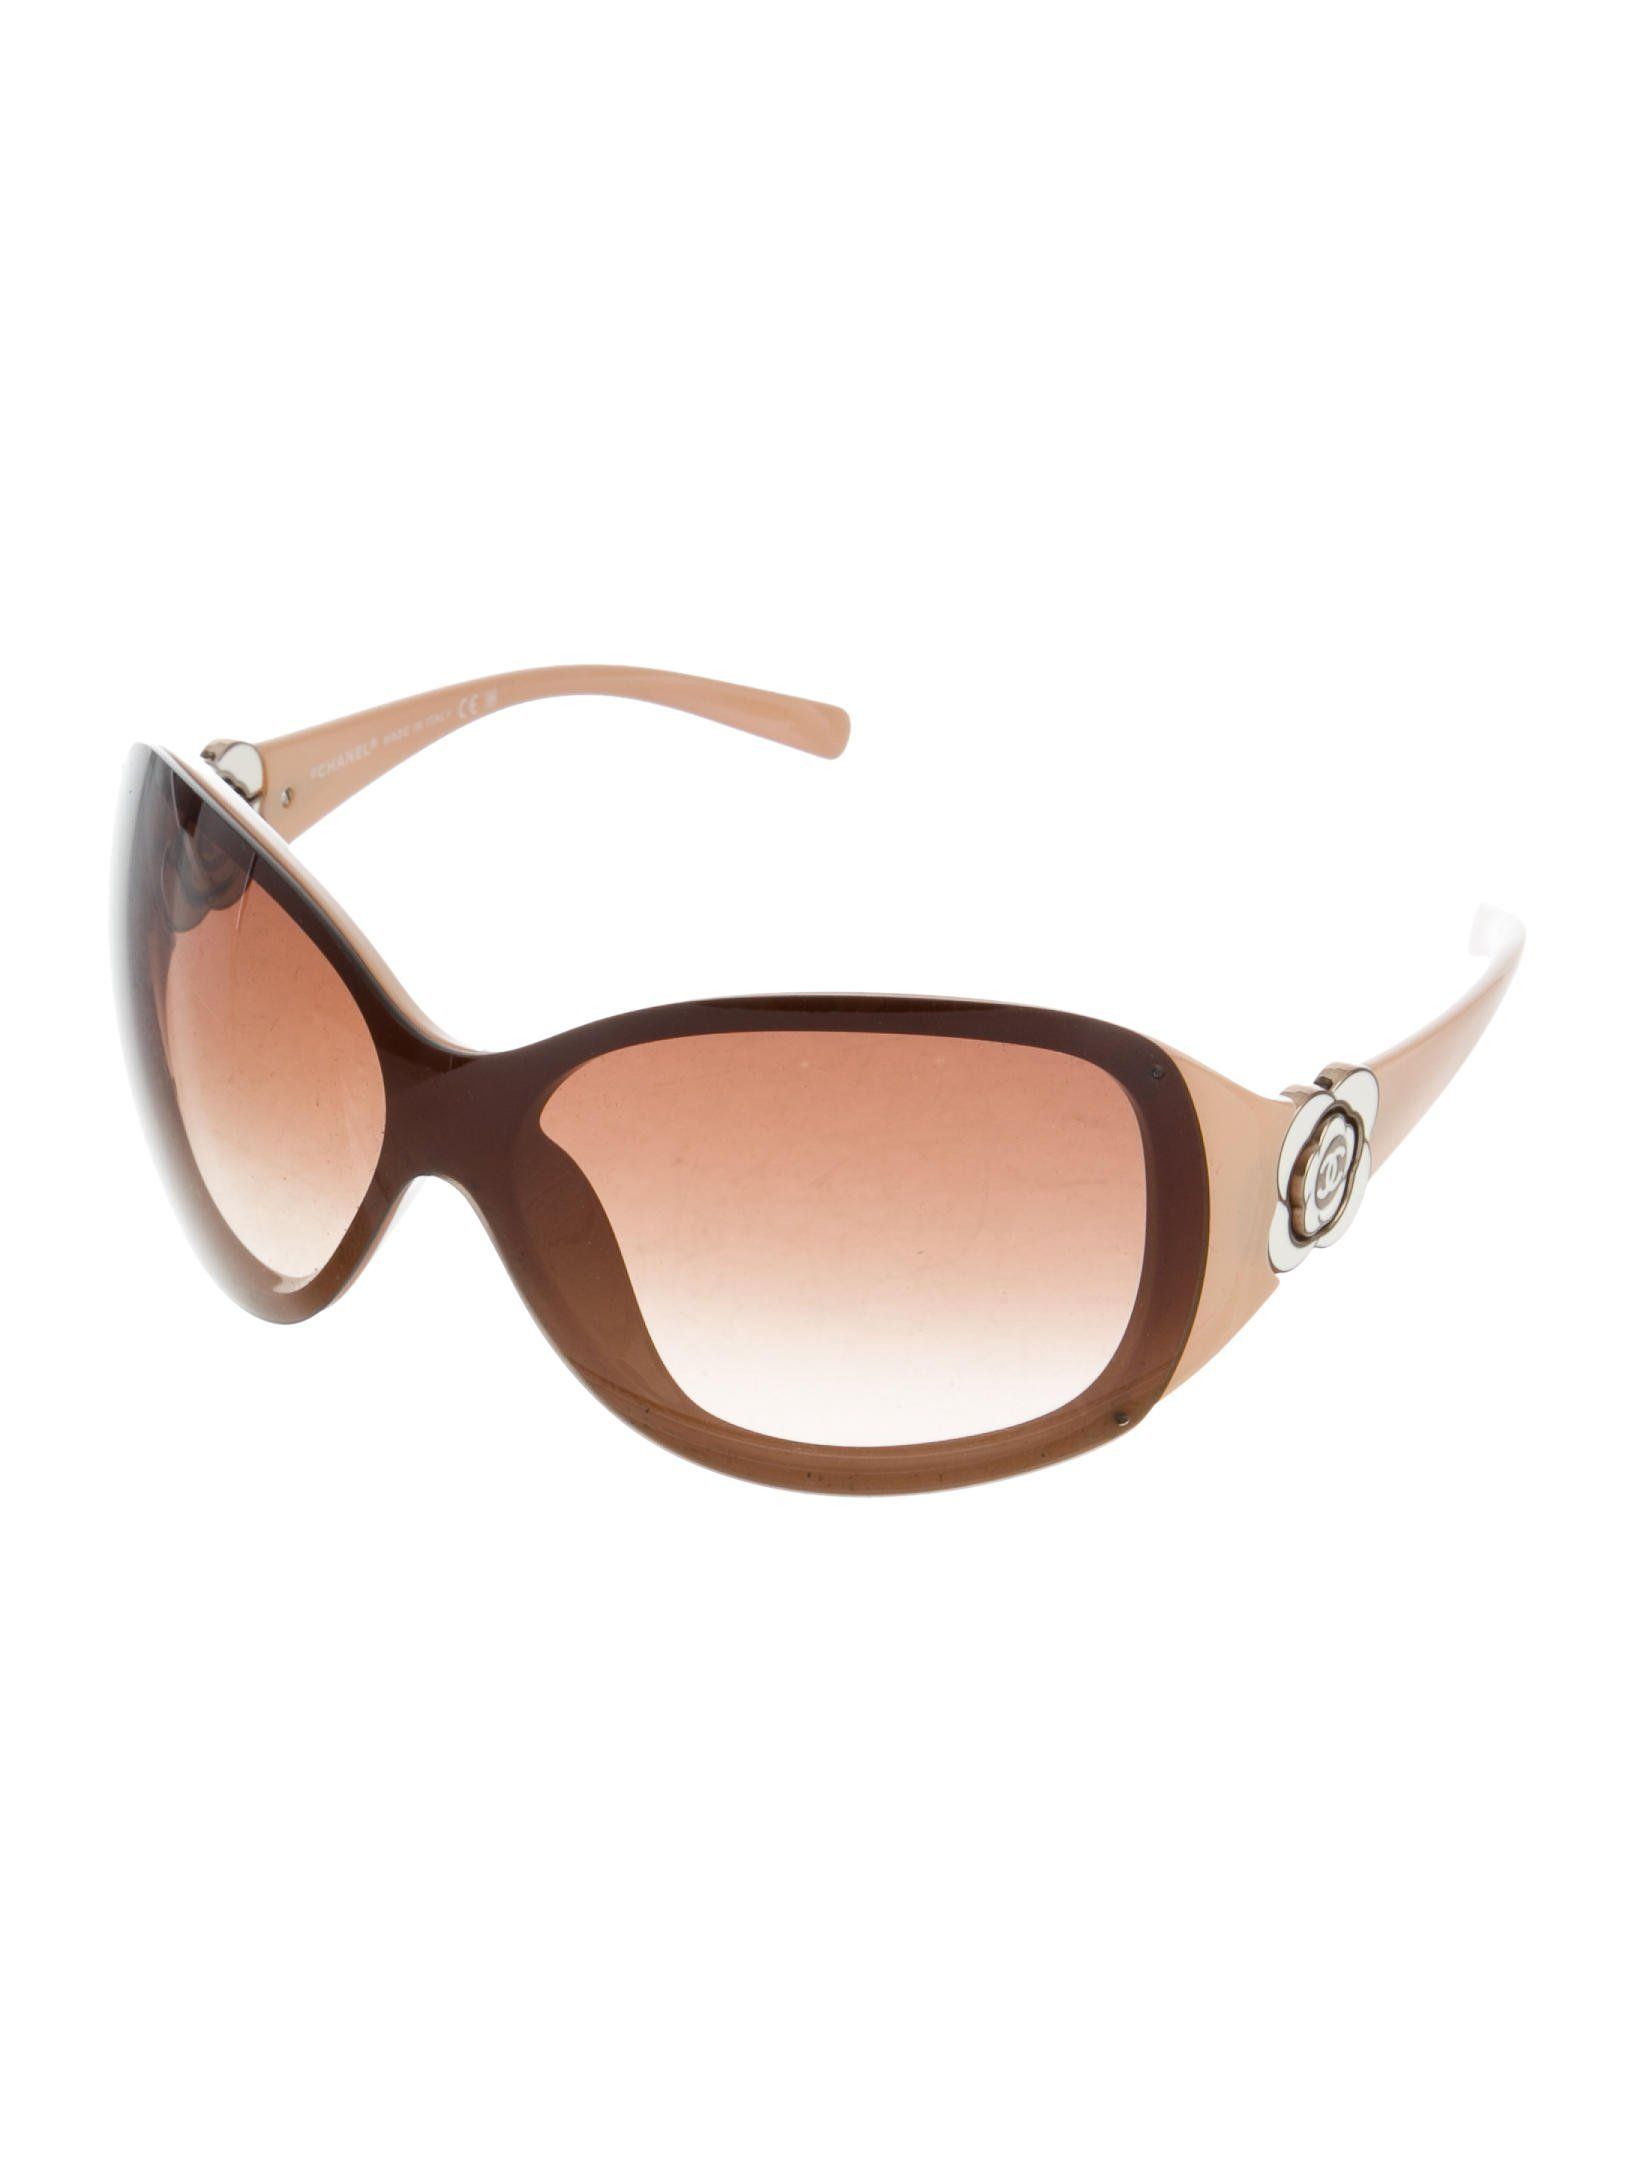 3252ba0f9d848 Brown and tan rimless Chanel shield sunglasses with camellia accents at  sides and gradient lenses. Includes case.